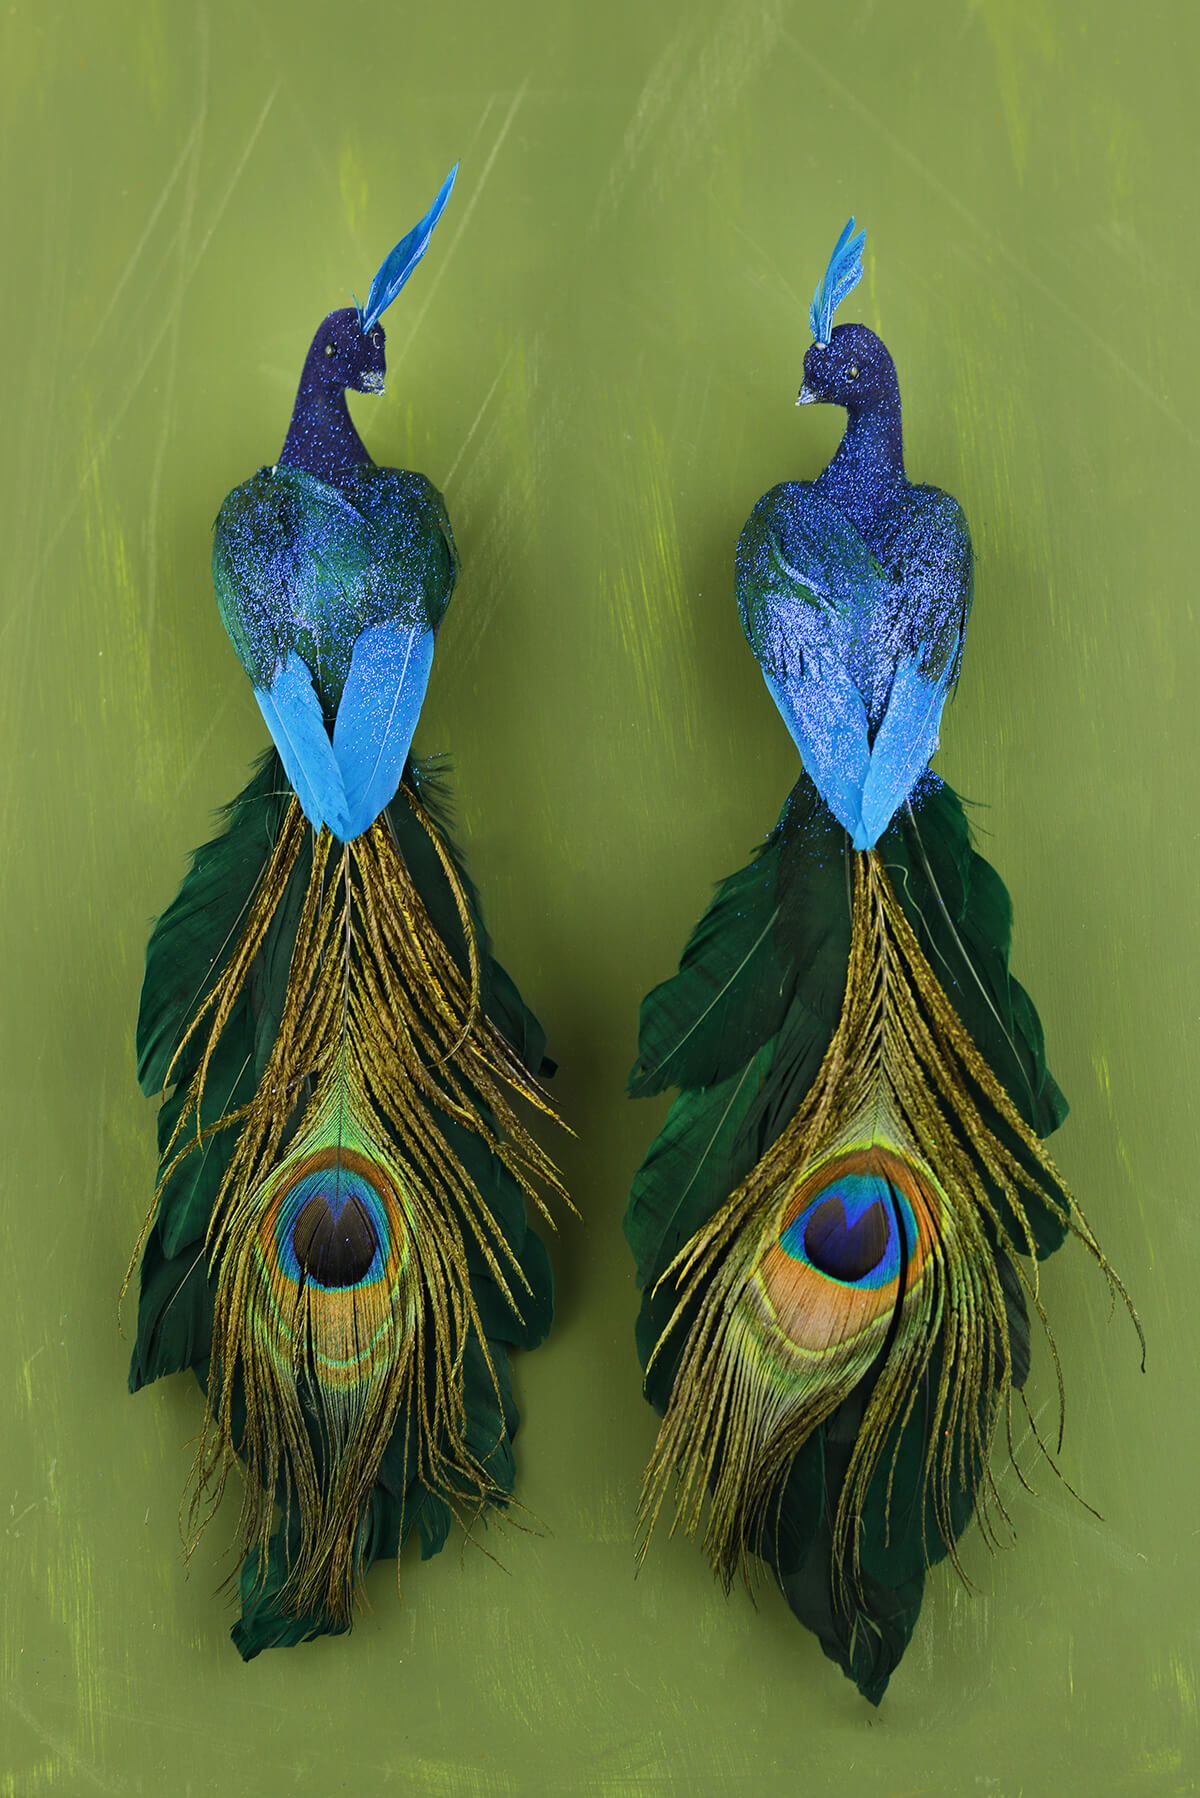 Blue Peacock Birds Set Of Two 11 Quot